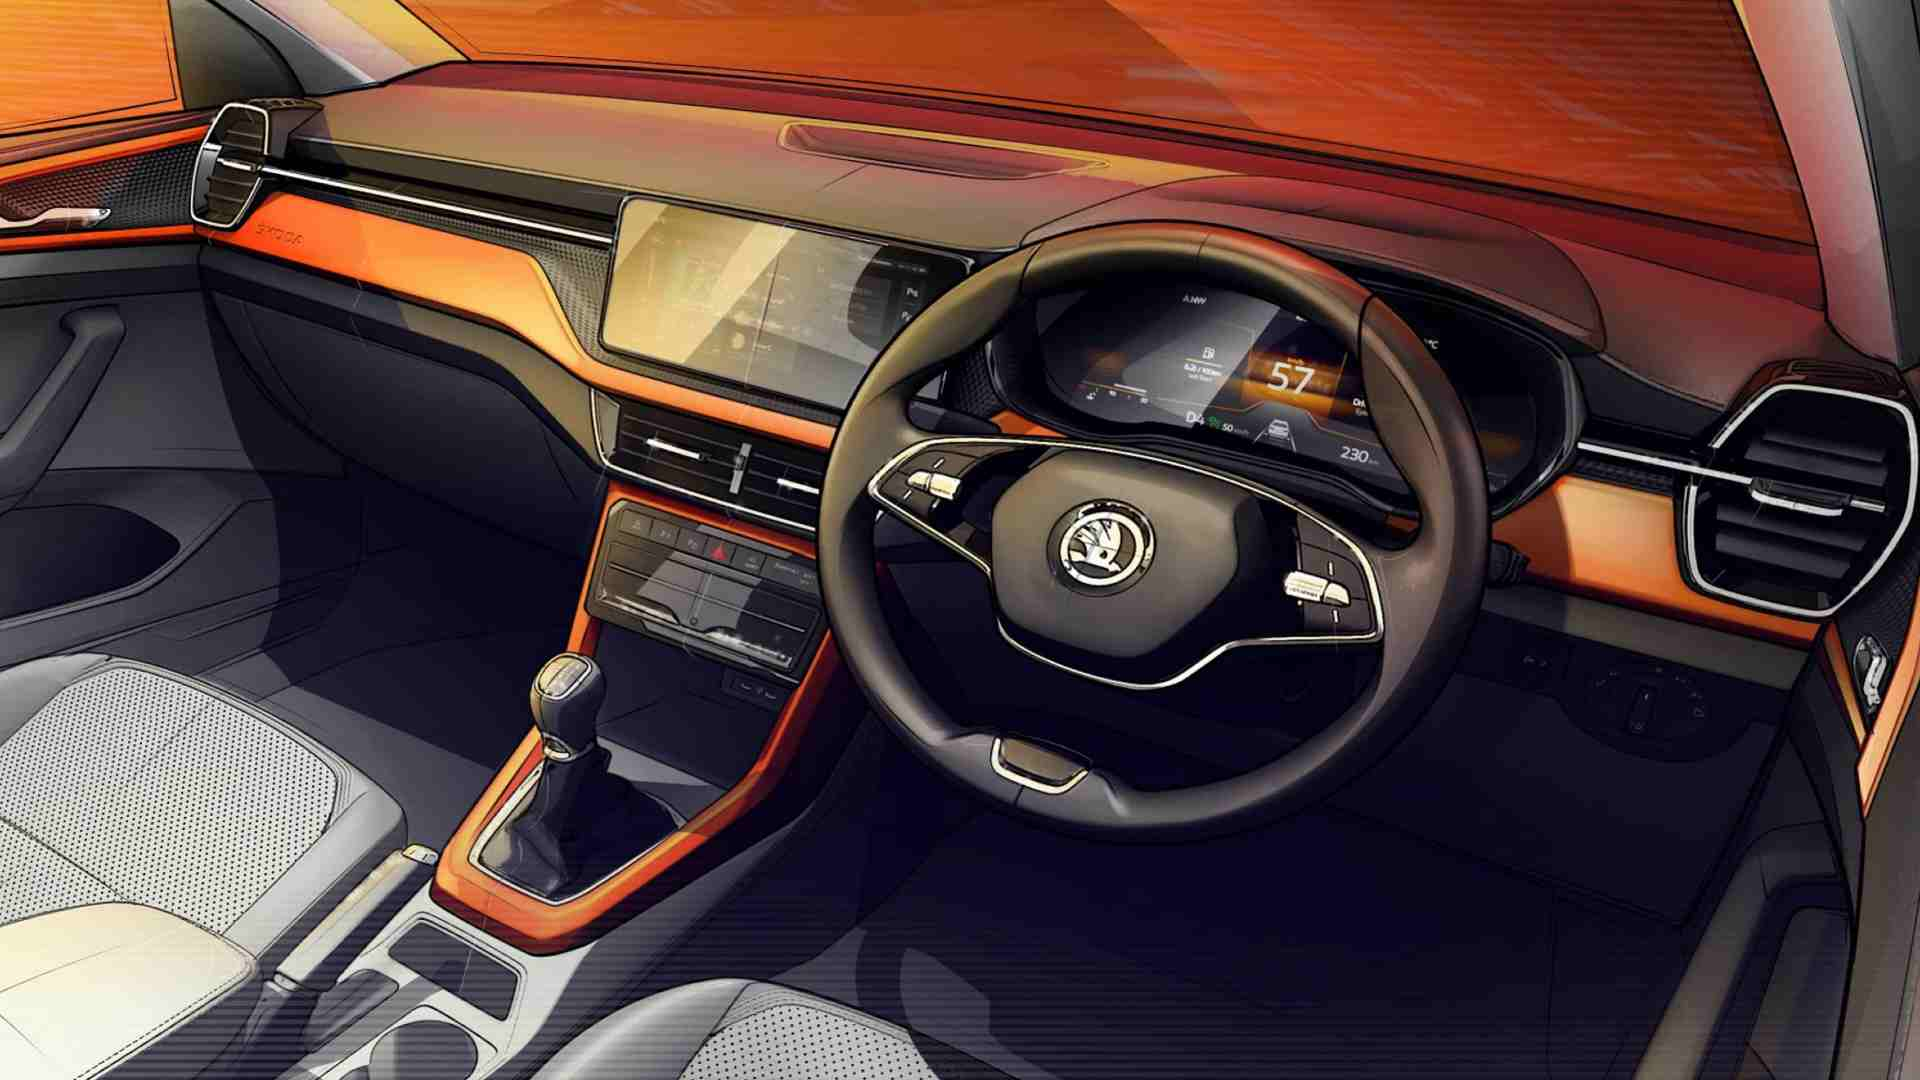 Skoda Kushaq interior previewed in design sketches, SUV to debut on 18 March